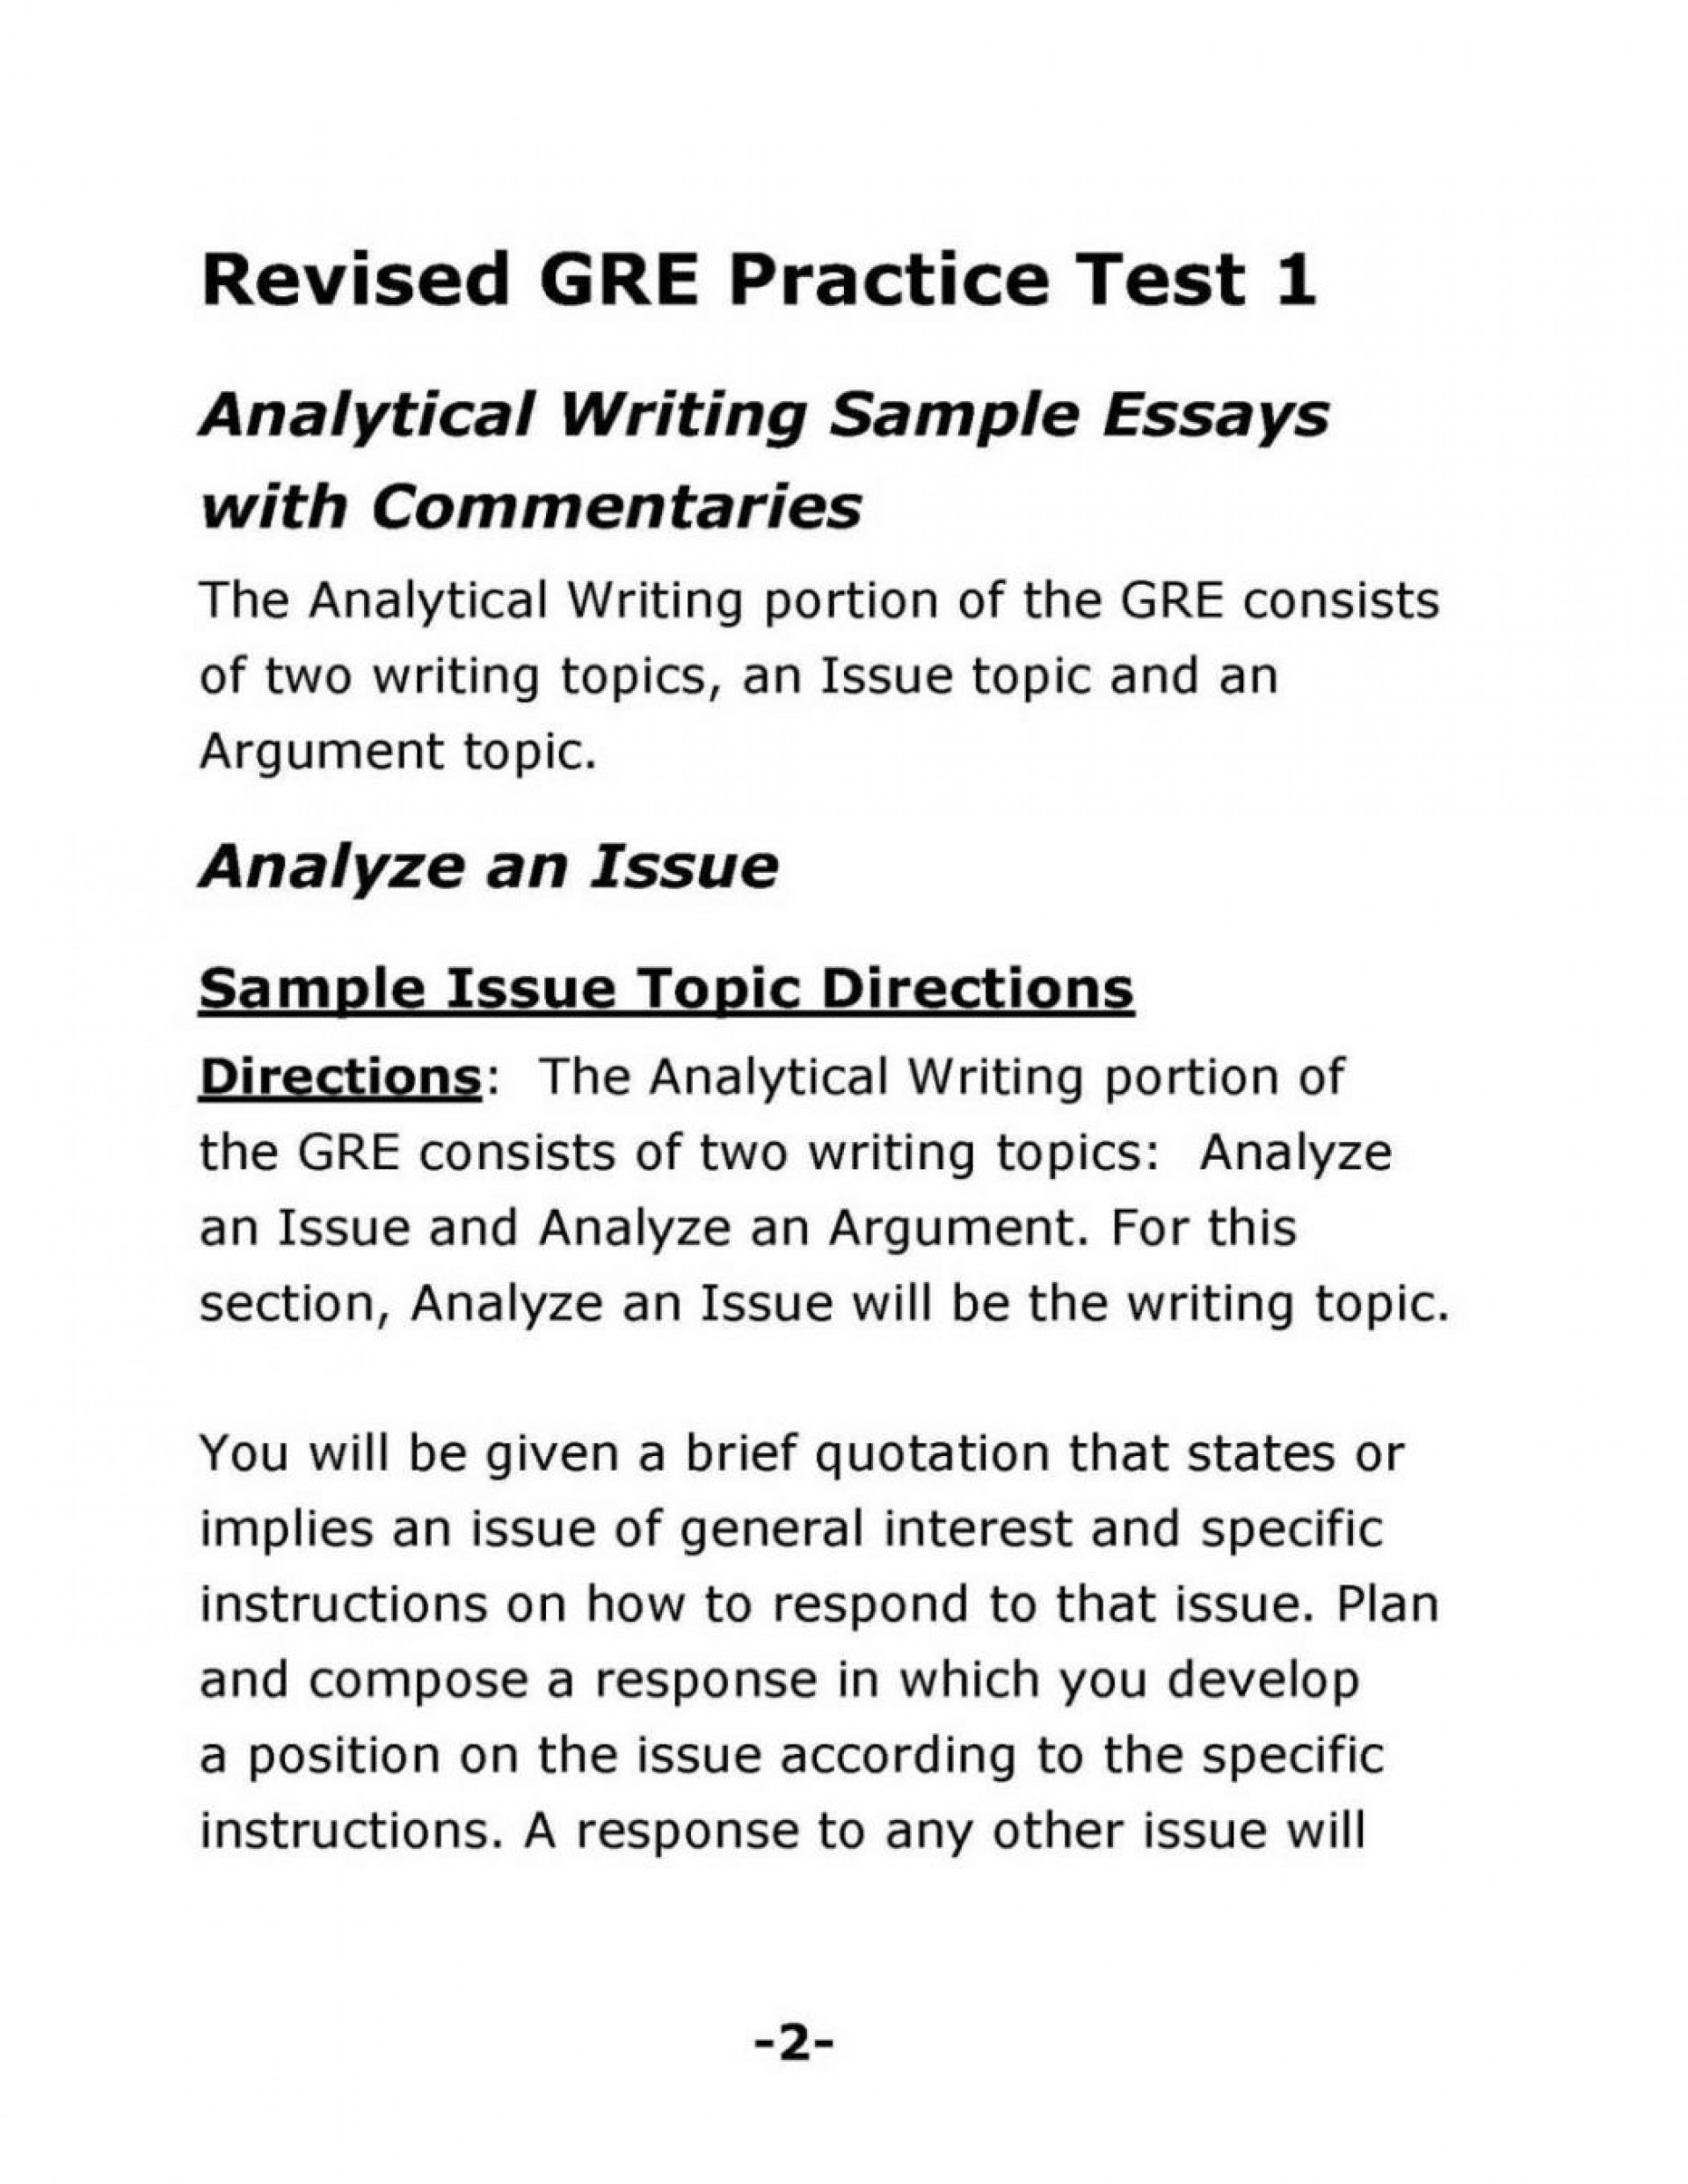 007 Essay Example Argumentative Analysis Topics Thesis For Literary Gre Questions List Sample Test Papers With Soluti Real Pool Issue Common Answers To Pdf Argument And 1048x1356 Fantastic Prompts Analytical Writing 1920